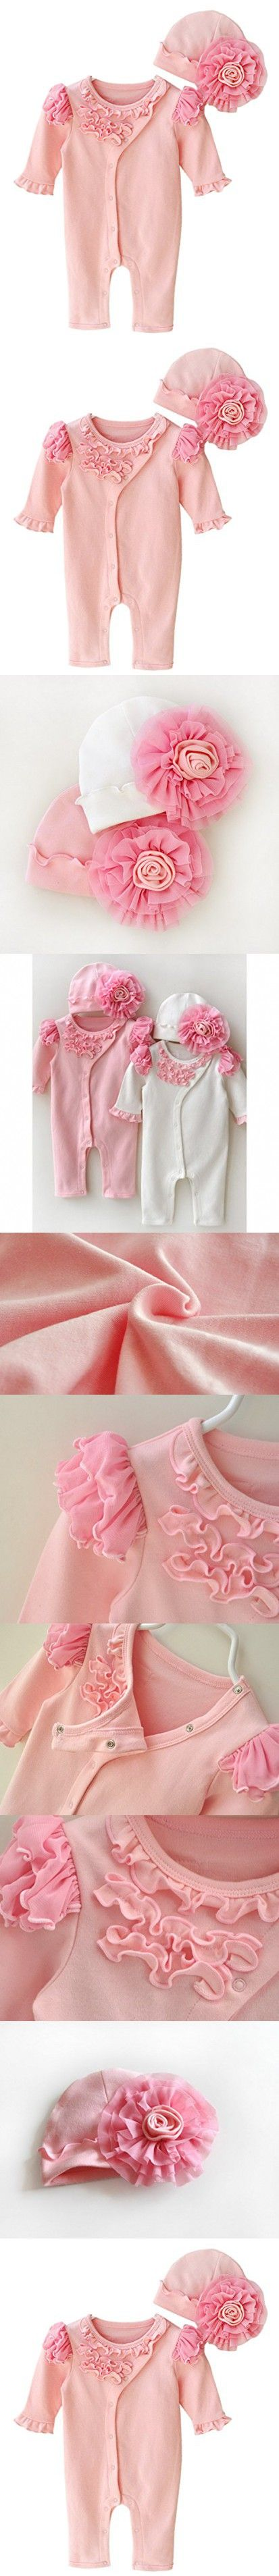 Baby Girls Cotton Ruffle Romper with Hat Infant Winter Solid Long Sleeve Snap on One Piece Footie Jumpsuit Sleeper for 0-3 Months Pink